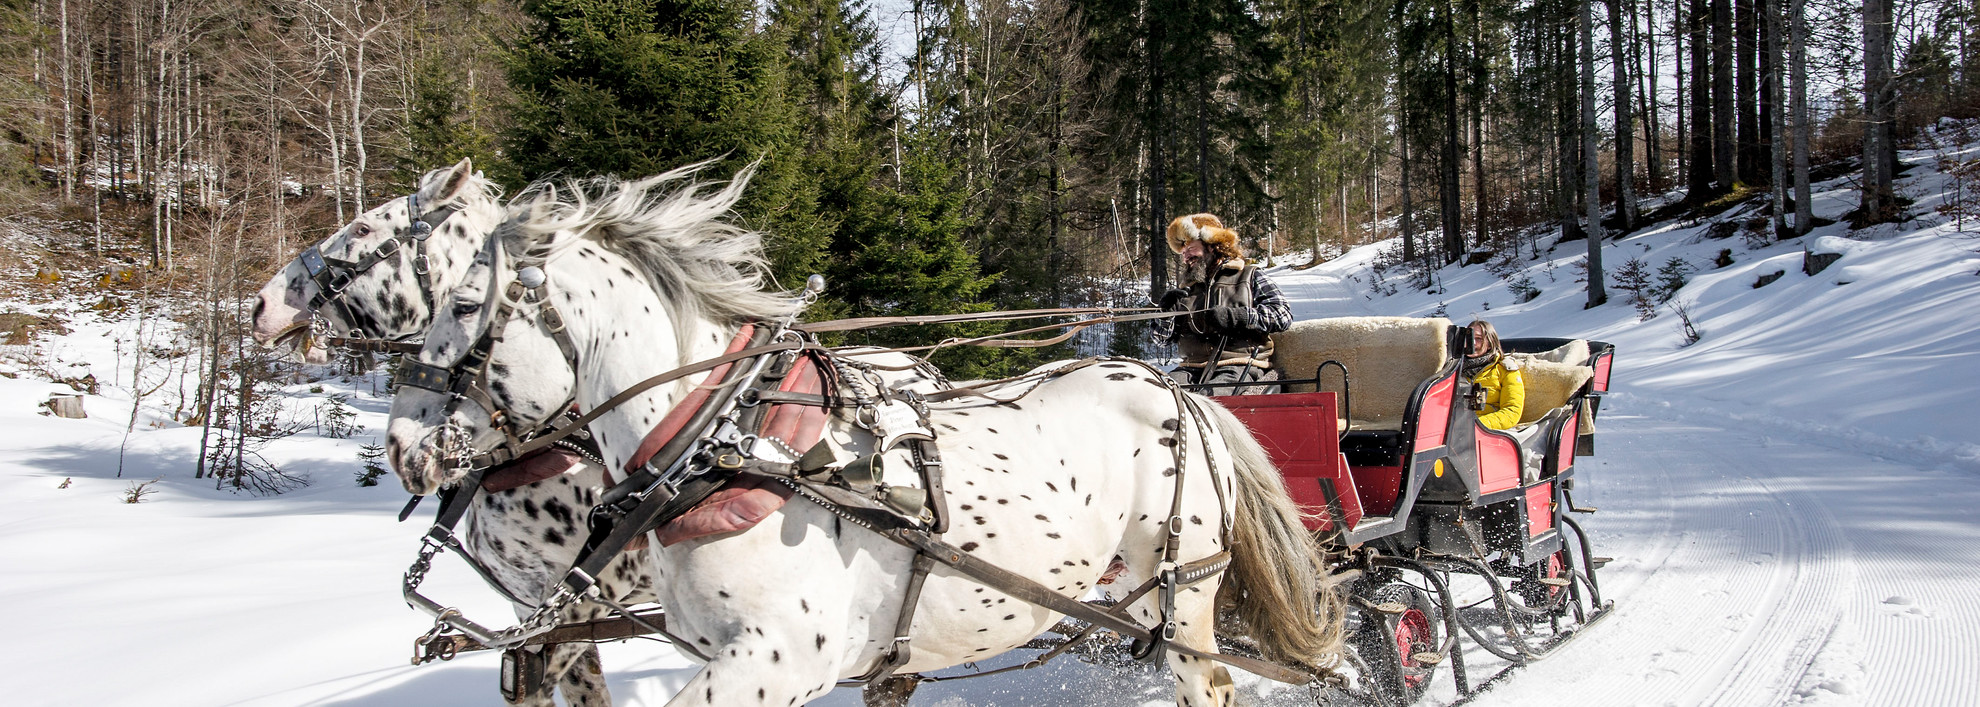 Peter Hammerer on sleigh ride | © Kleinwalsertal Tourismus eGen | Photographer: Dominik Berchtold